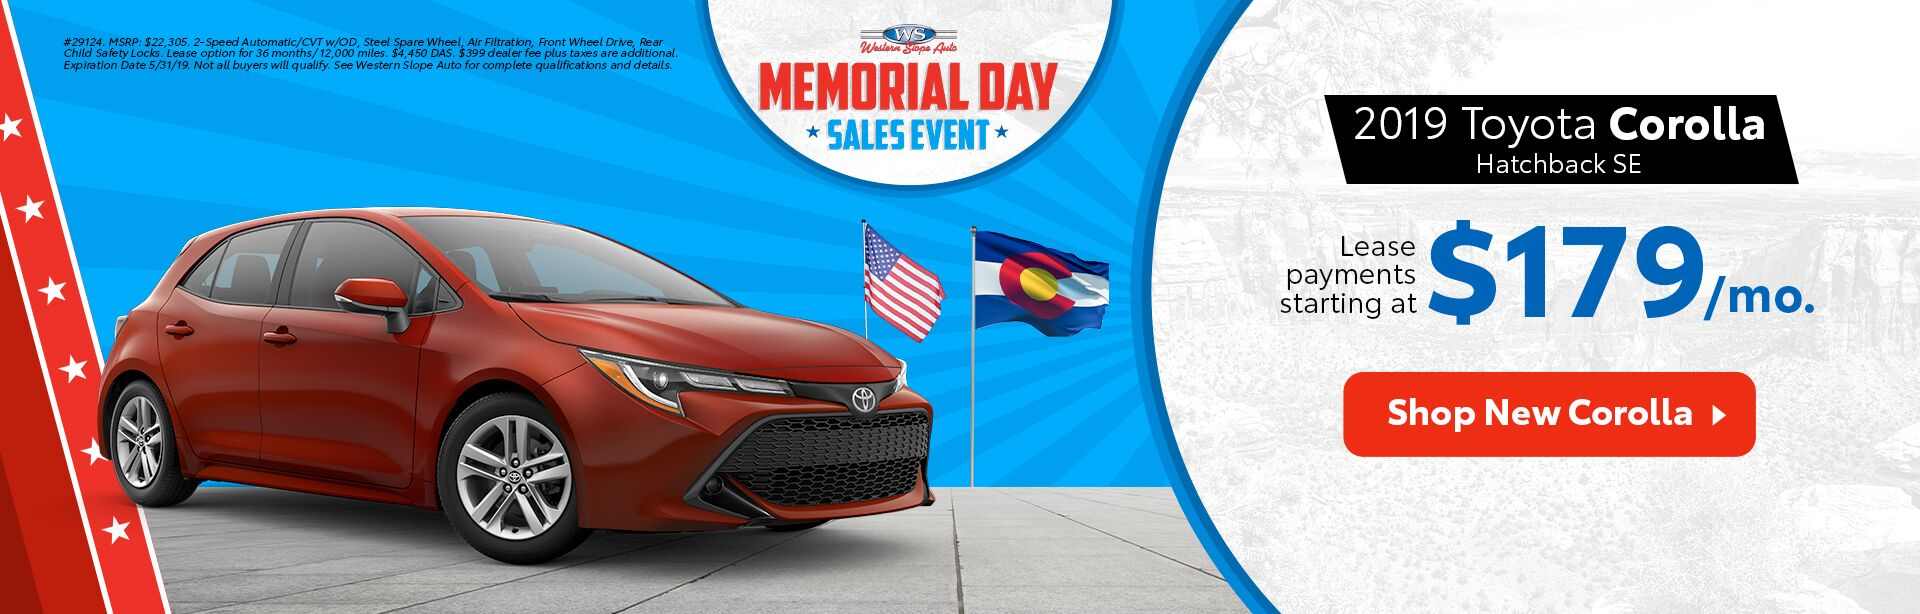 2019 Corolla Hatchback / Memorial Day Sales Event